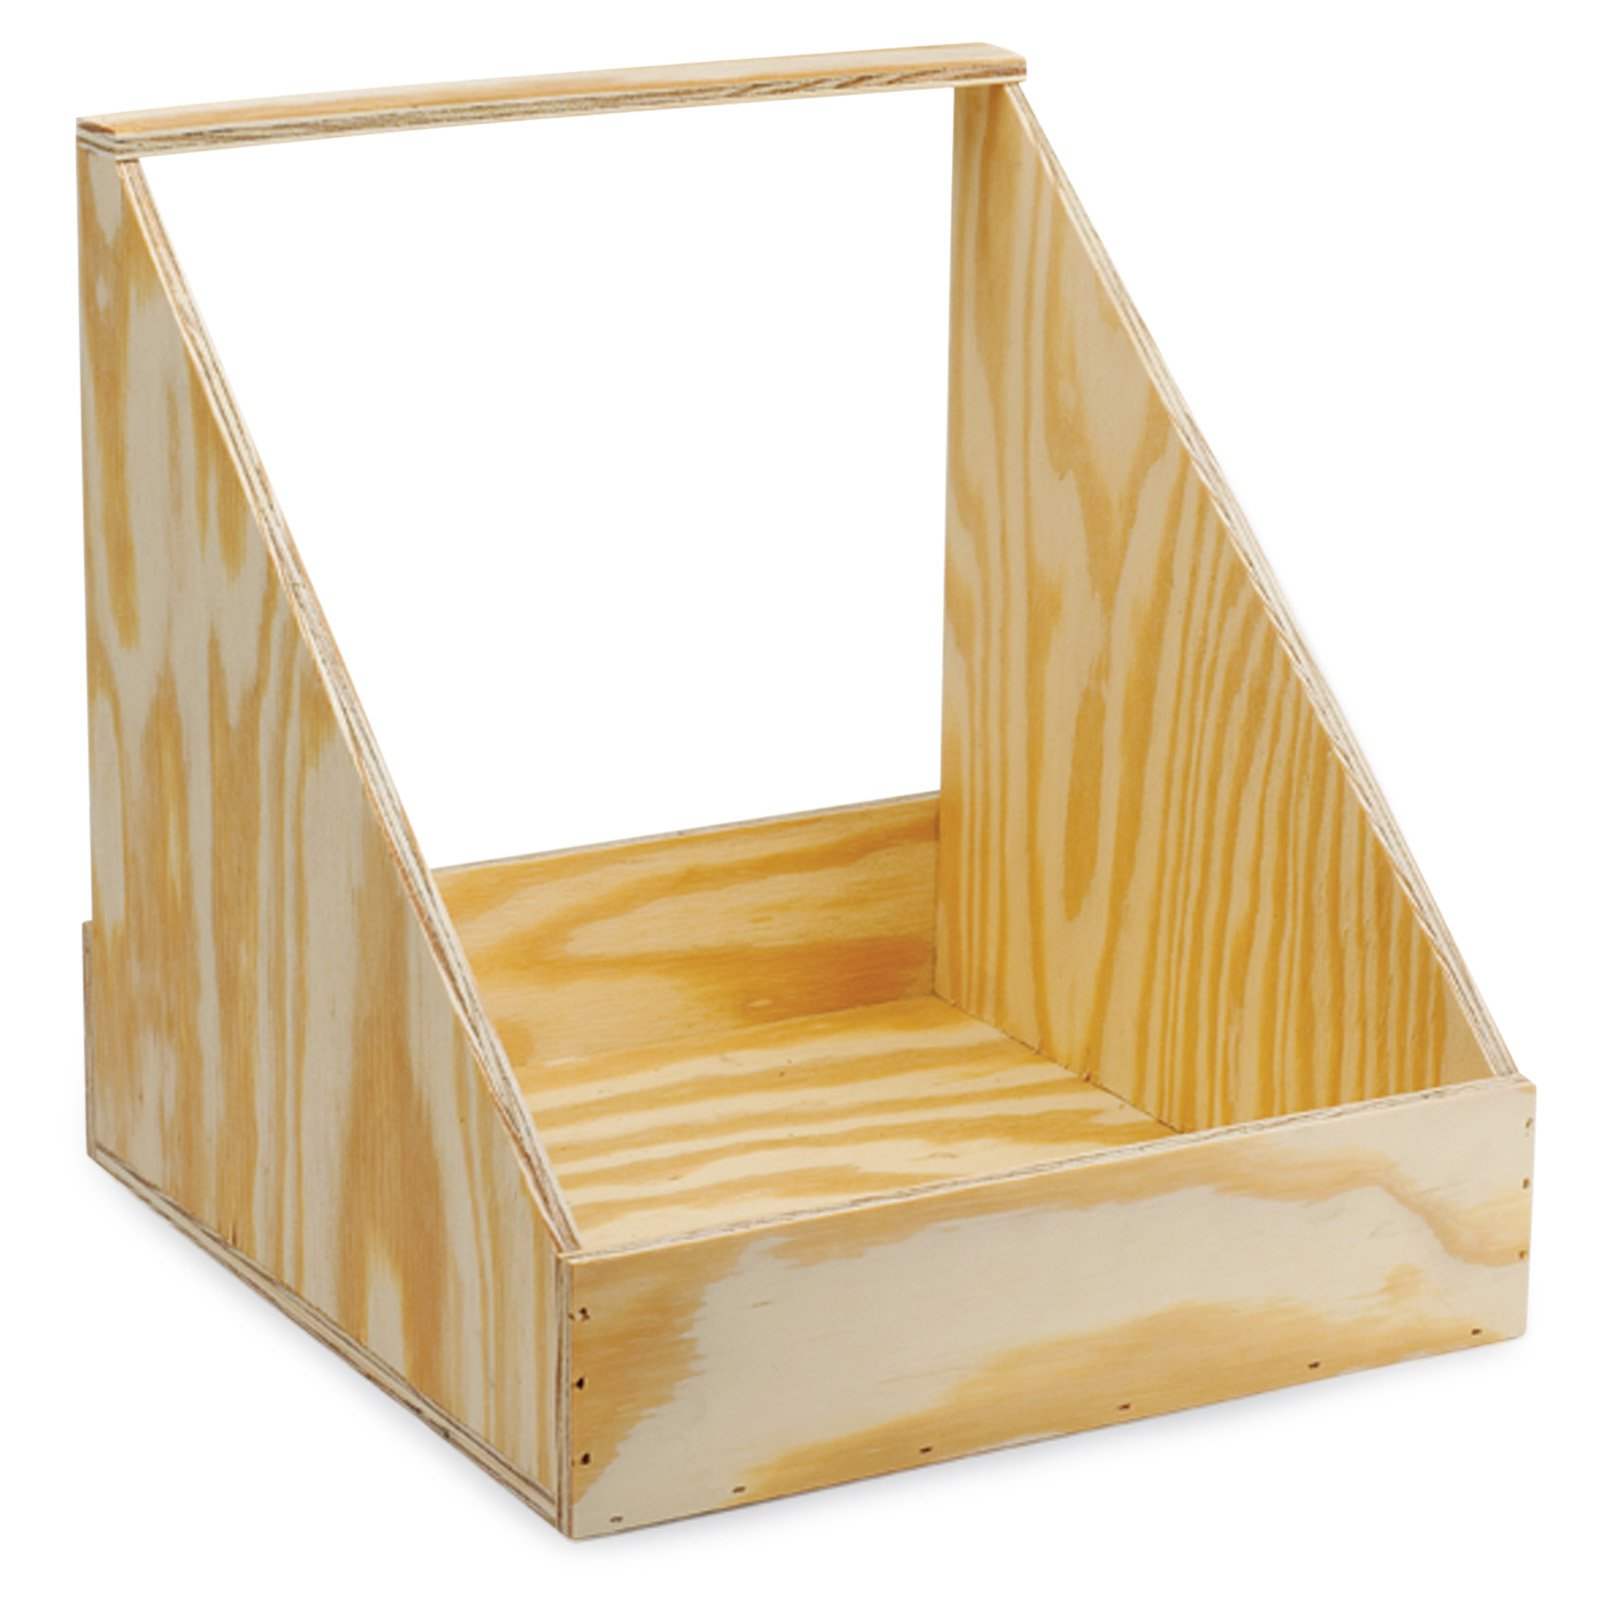 WARE MANUFACTURING INC 01492 Chick-N-Nesting Box